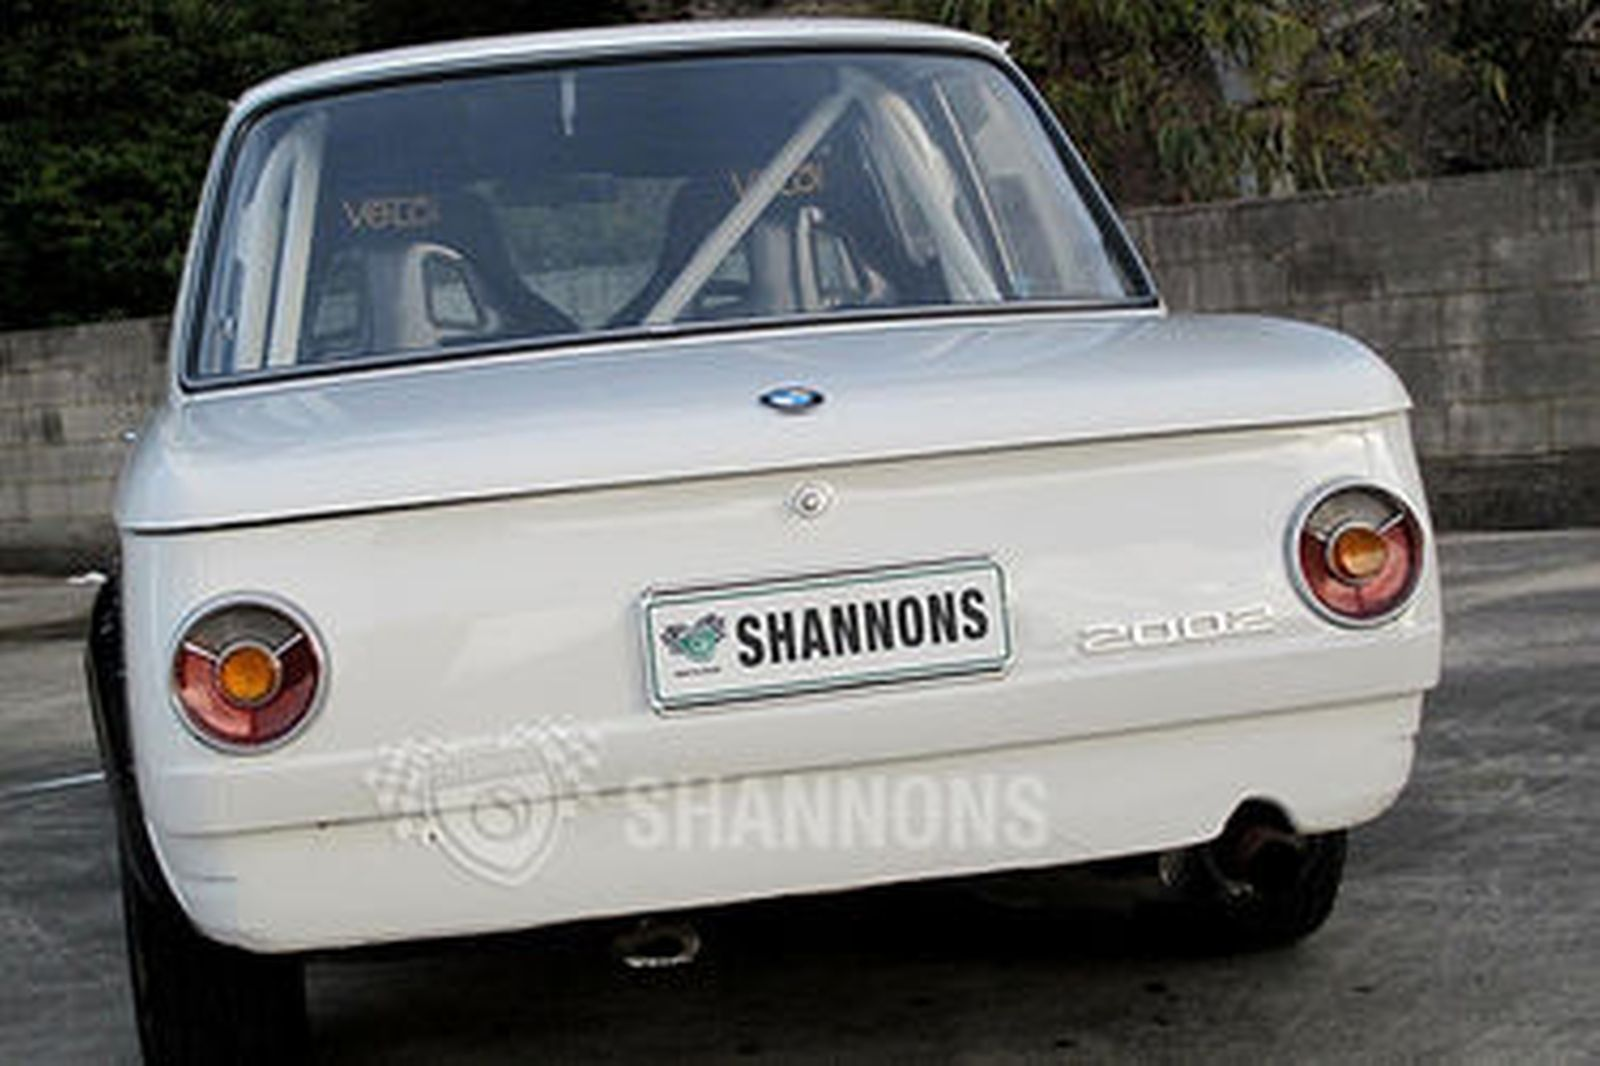 BMW 2002 \'Track Prepared Coupe\' Auctions - Lot 13 - Shannons